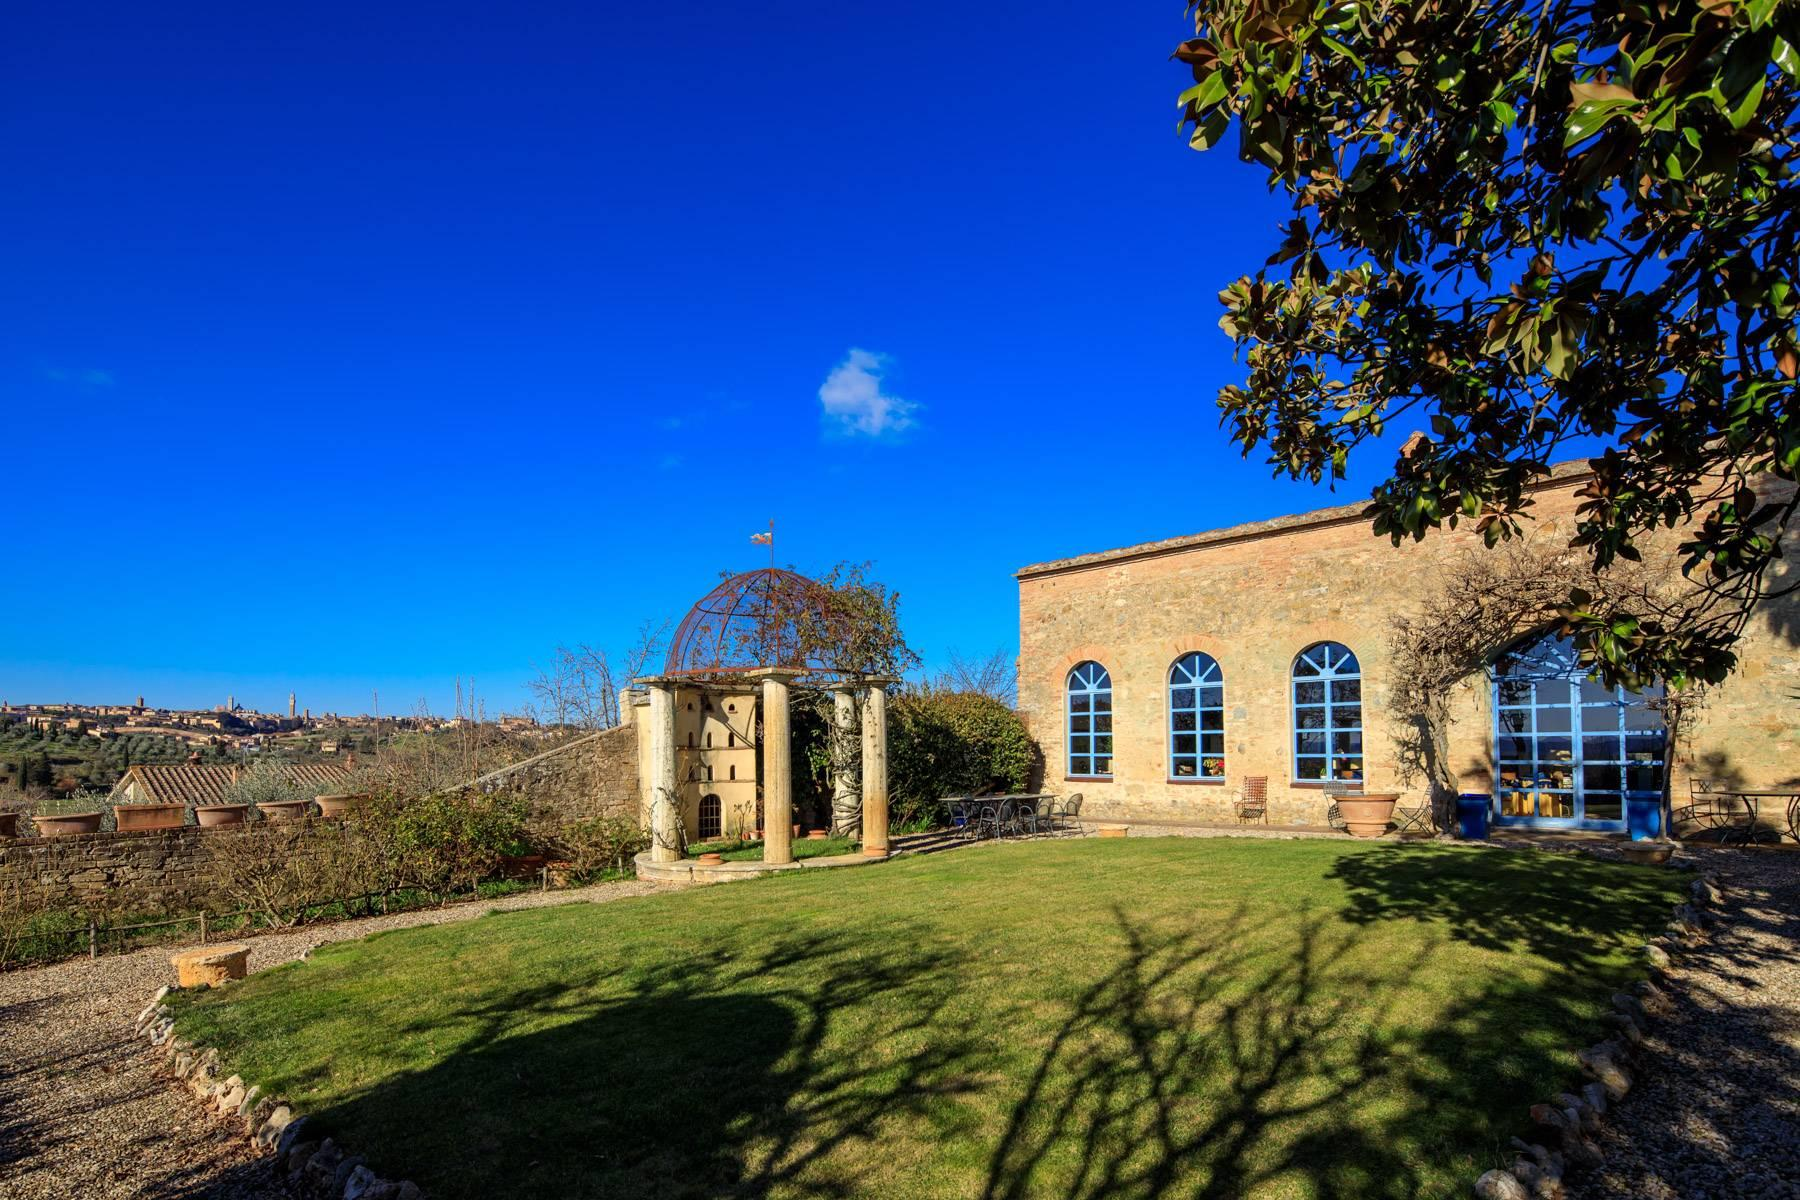 Wonderful historical Villa and country house close by Siena - 3